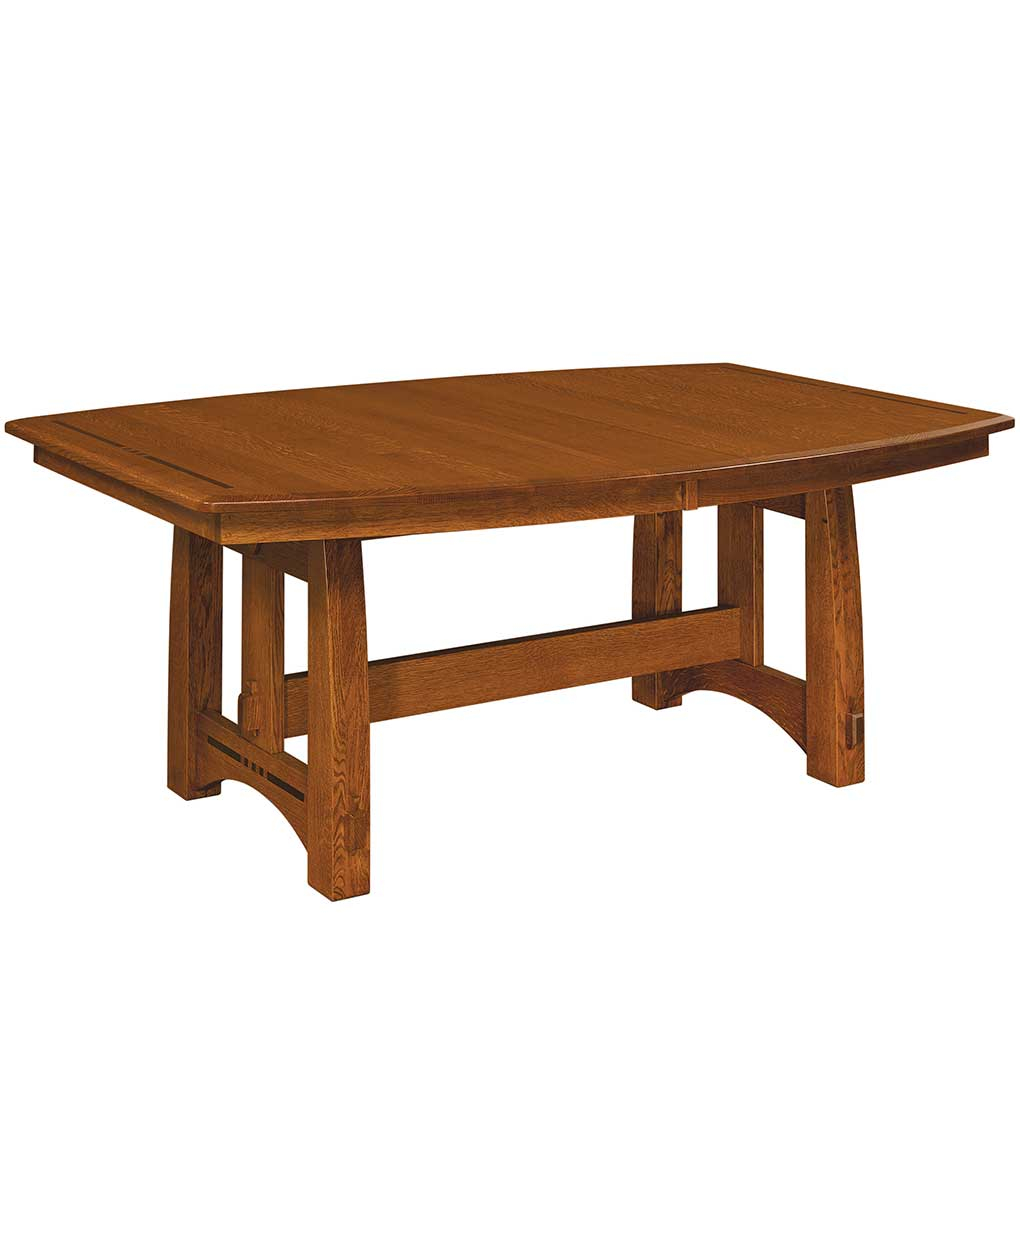 Colebrook Amish Trestle Table